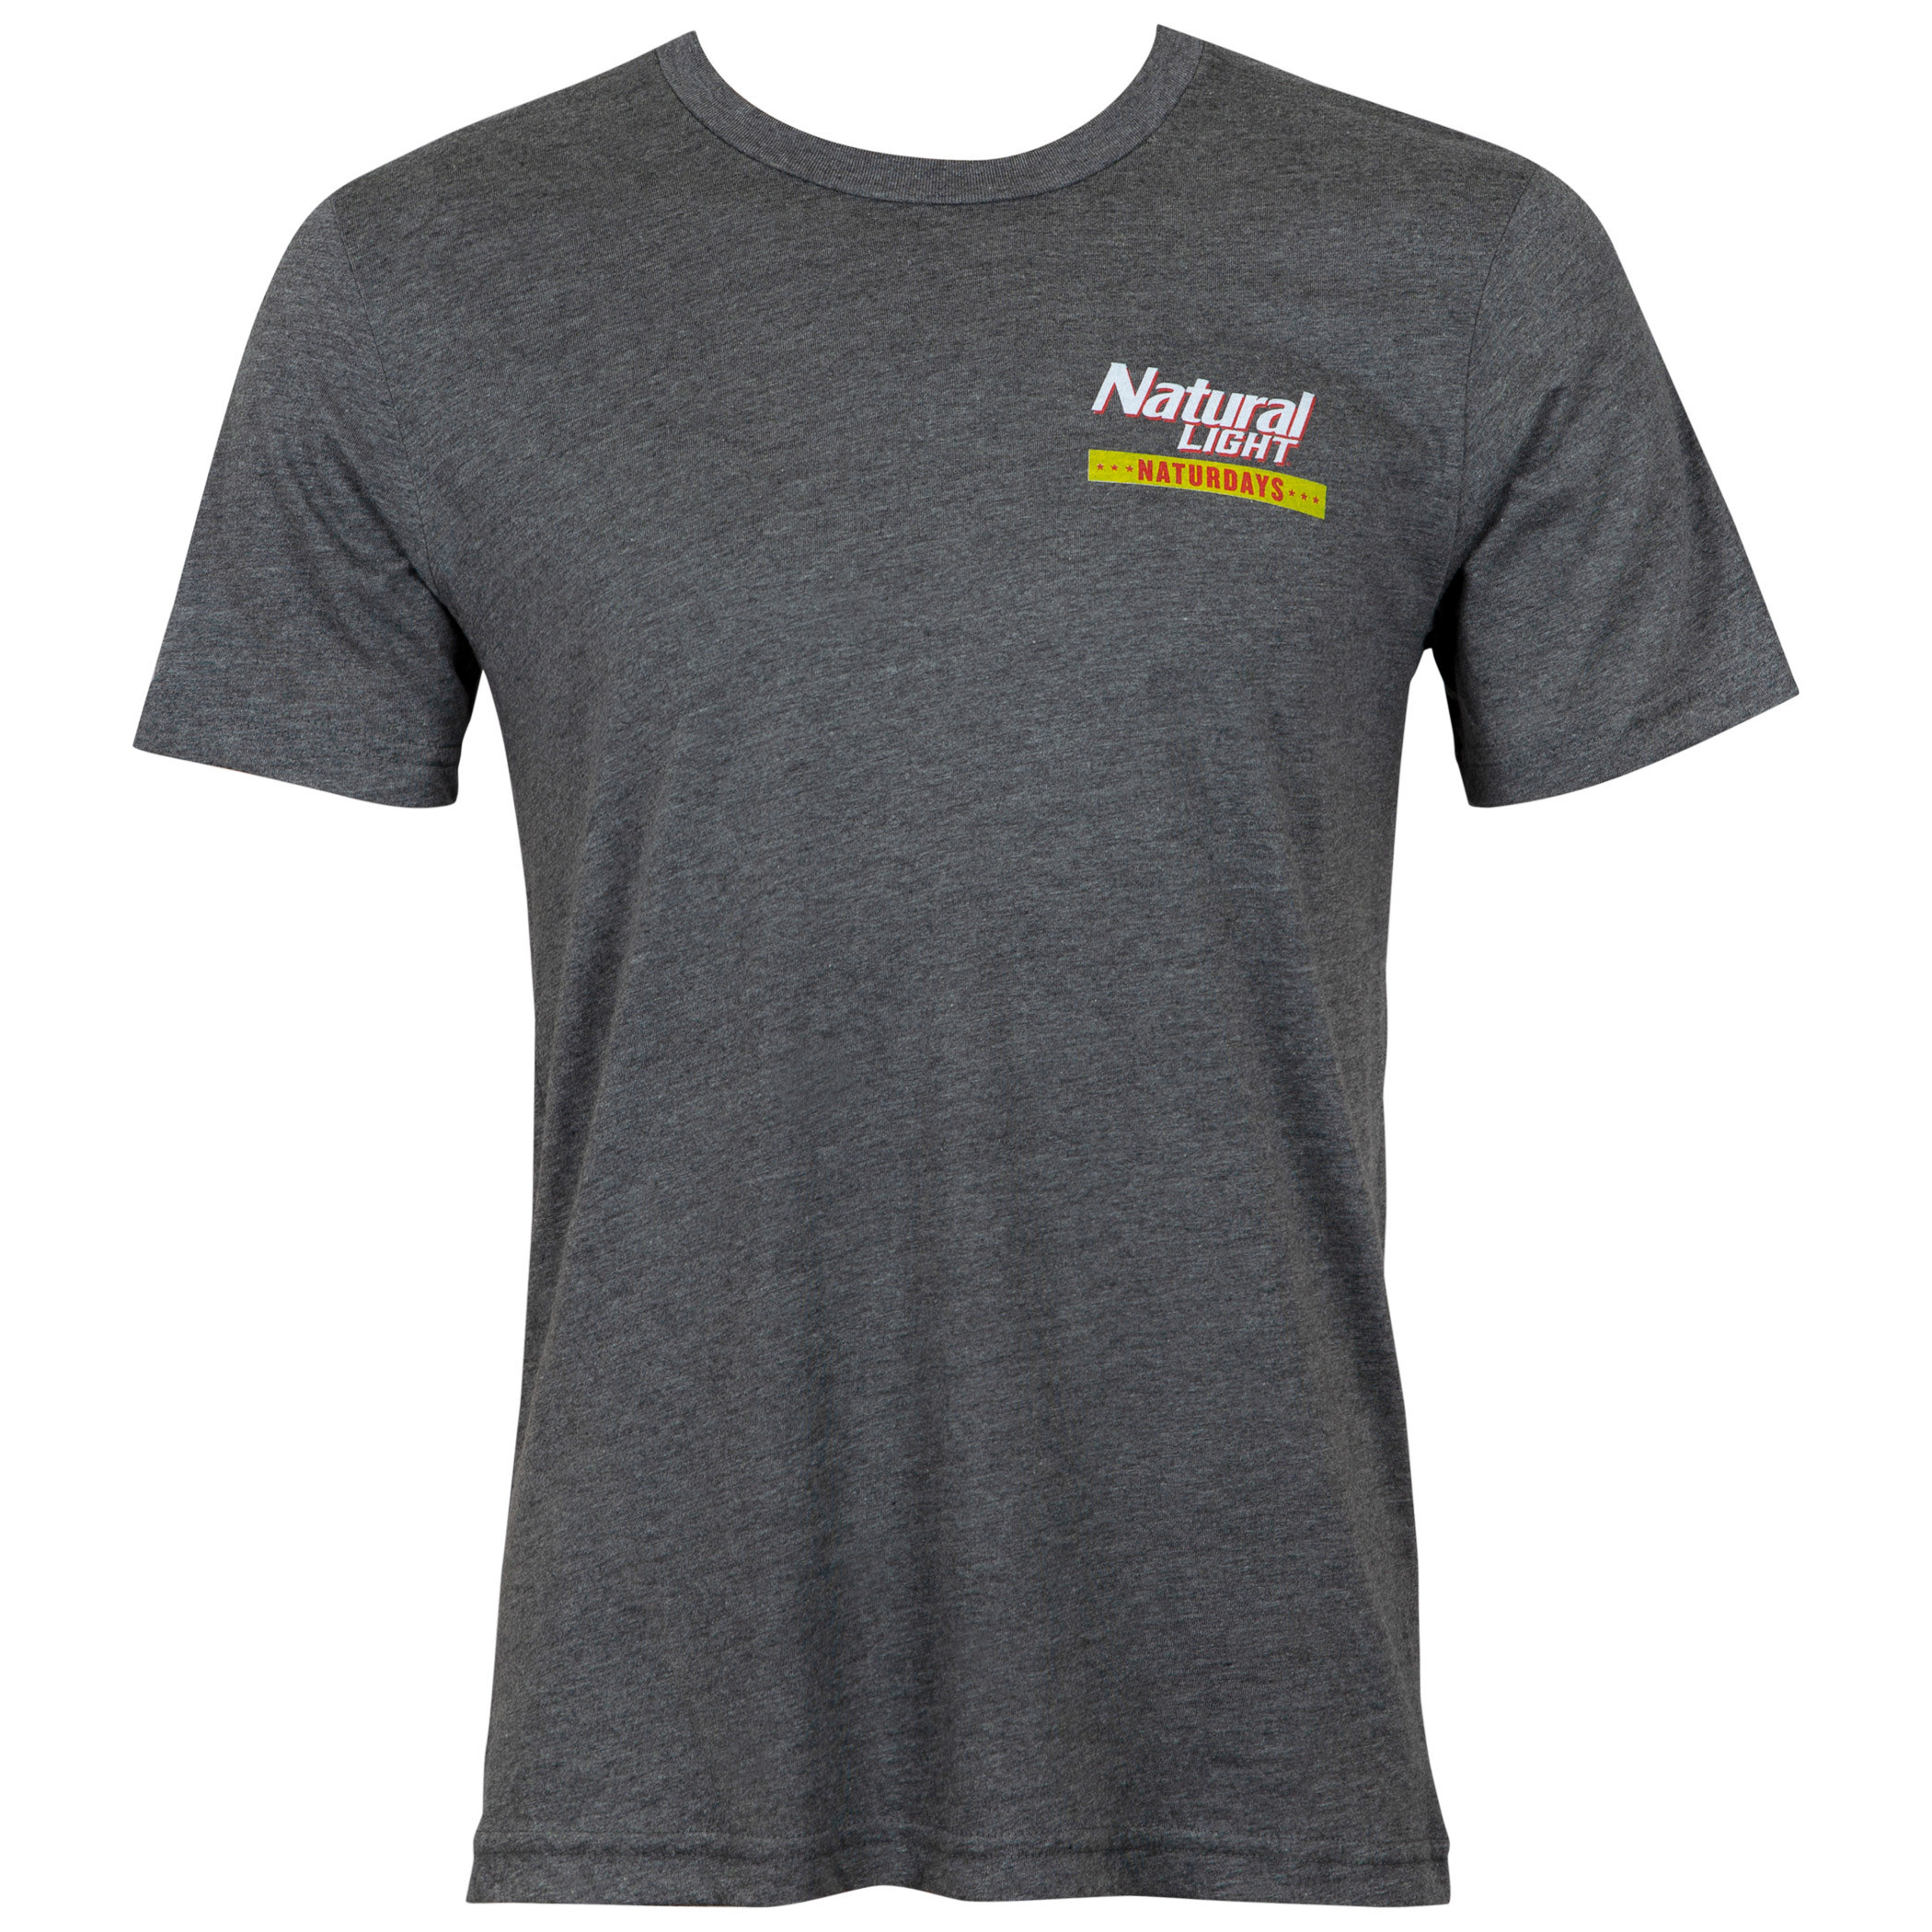 Natty Naturdays Grey Natural Light Men's Tee Shirt